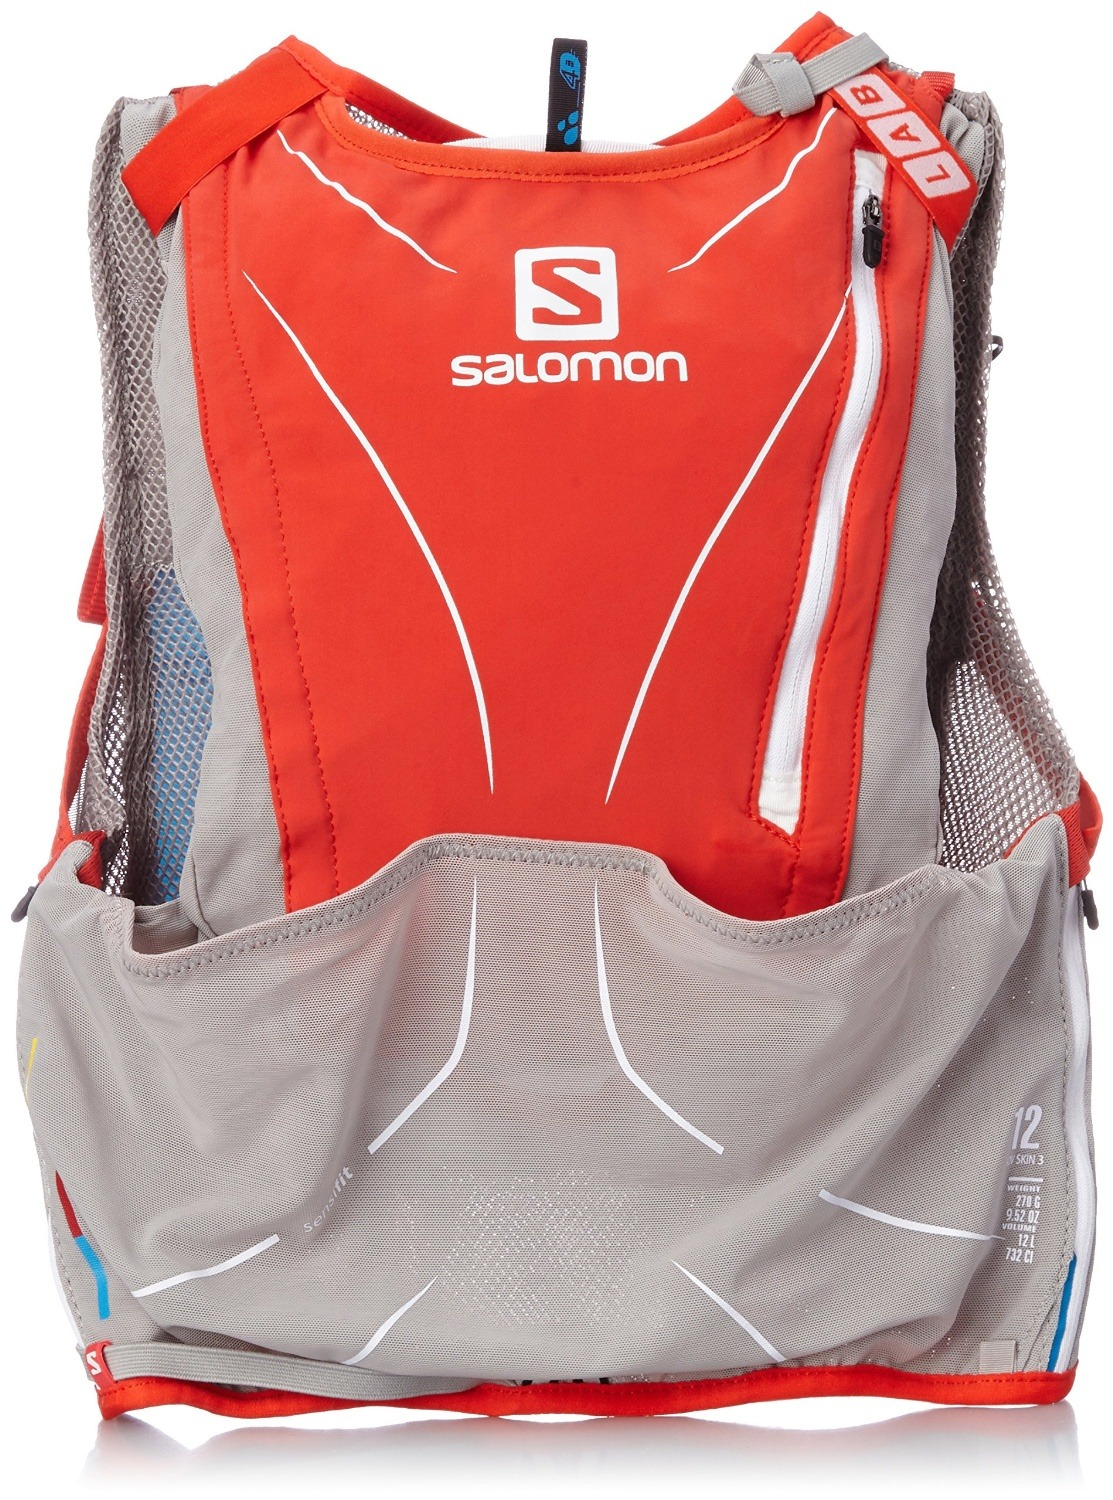 SALOMON S-LAB ADVANCED SKIN 3 12 SET RACING VEST